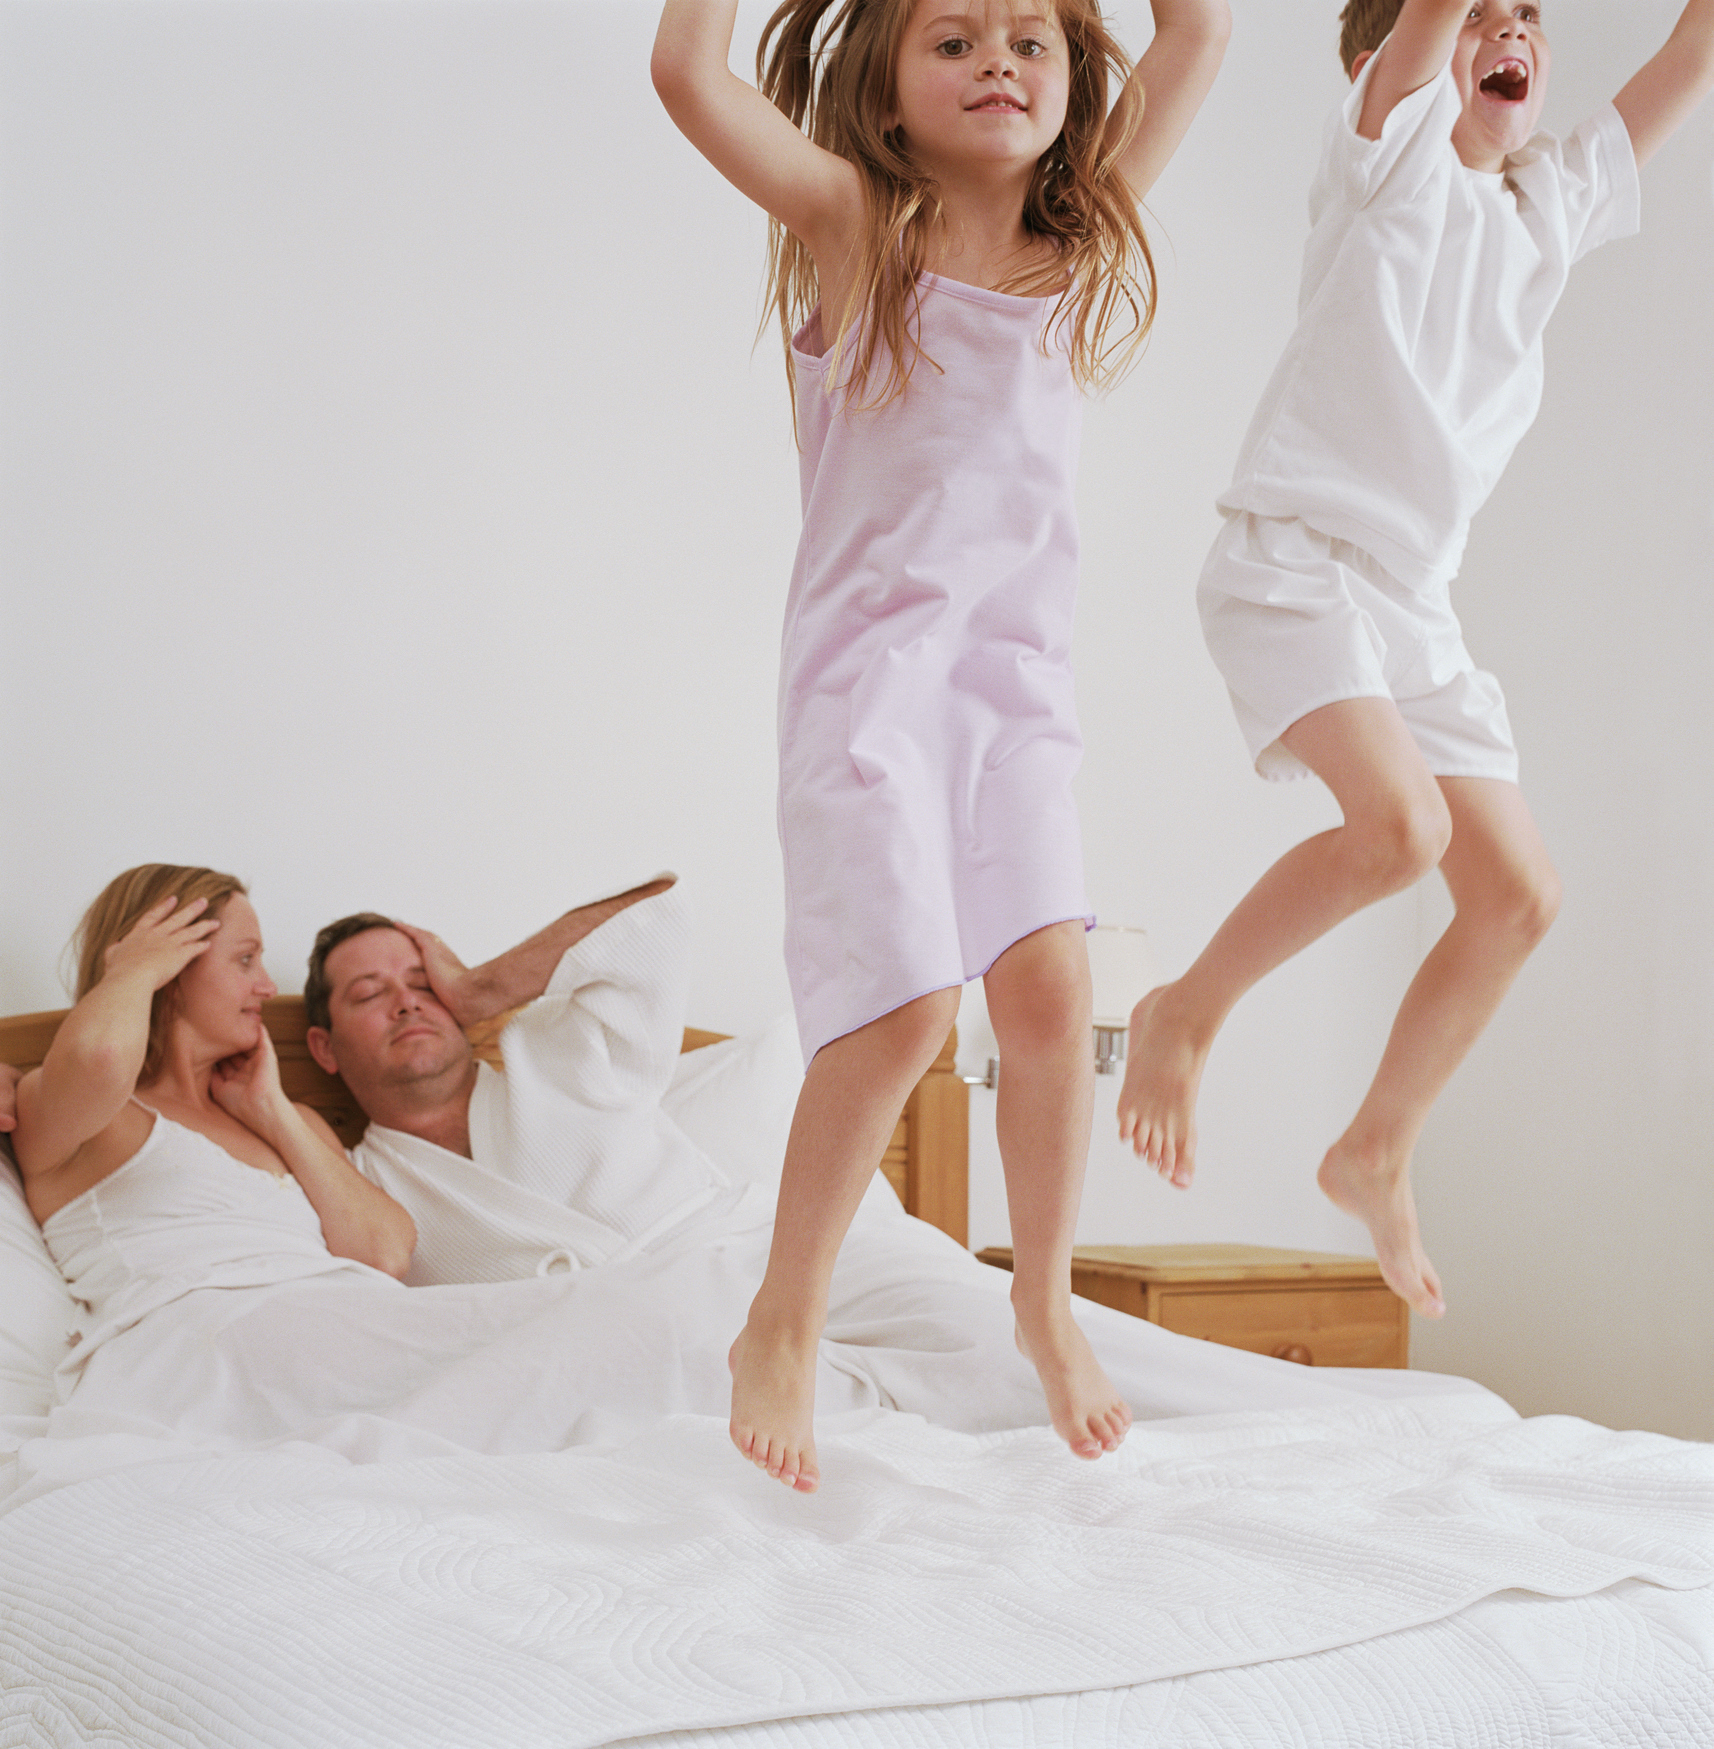 Kids jumping on parents bed